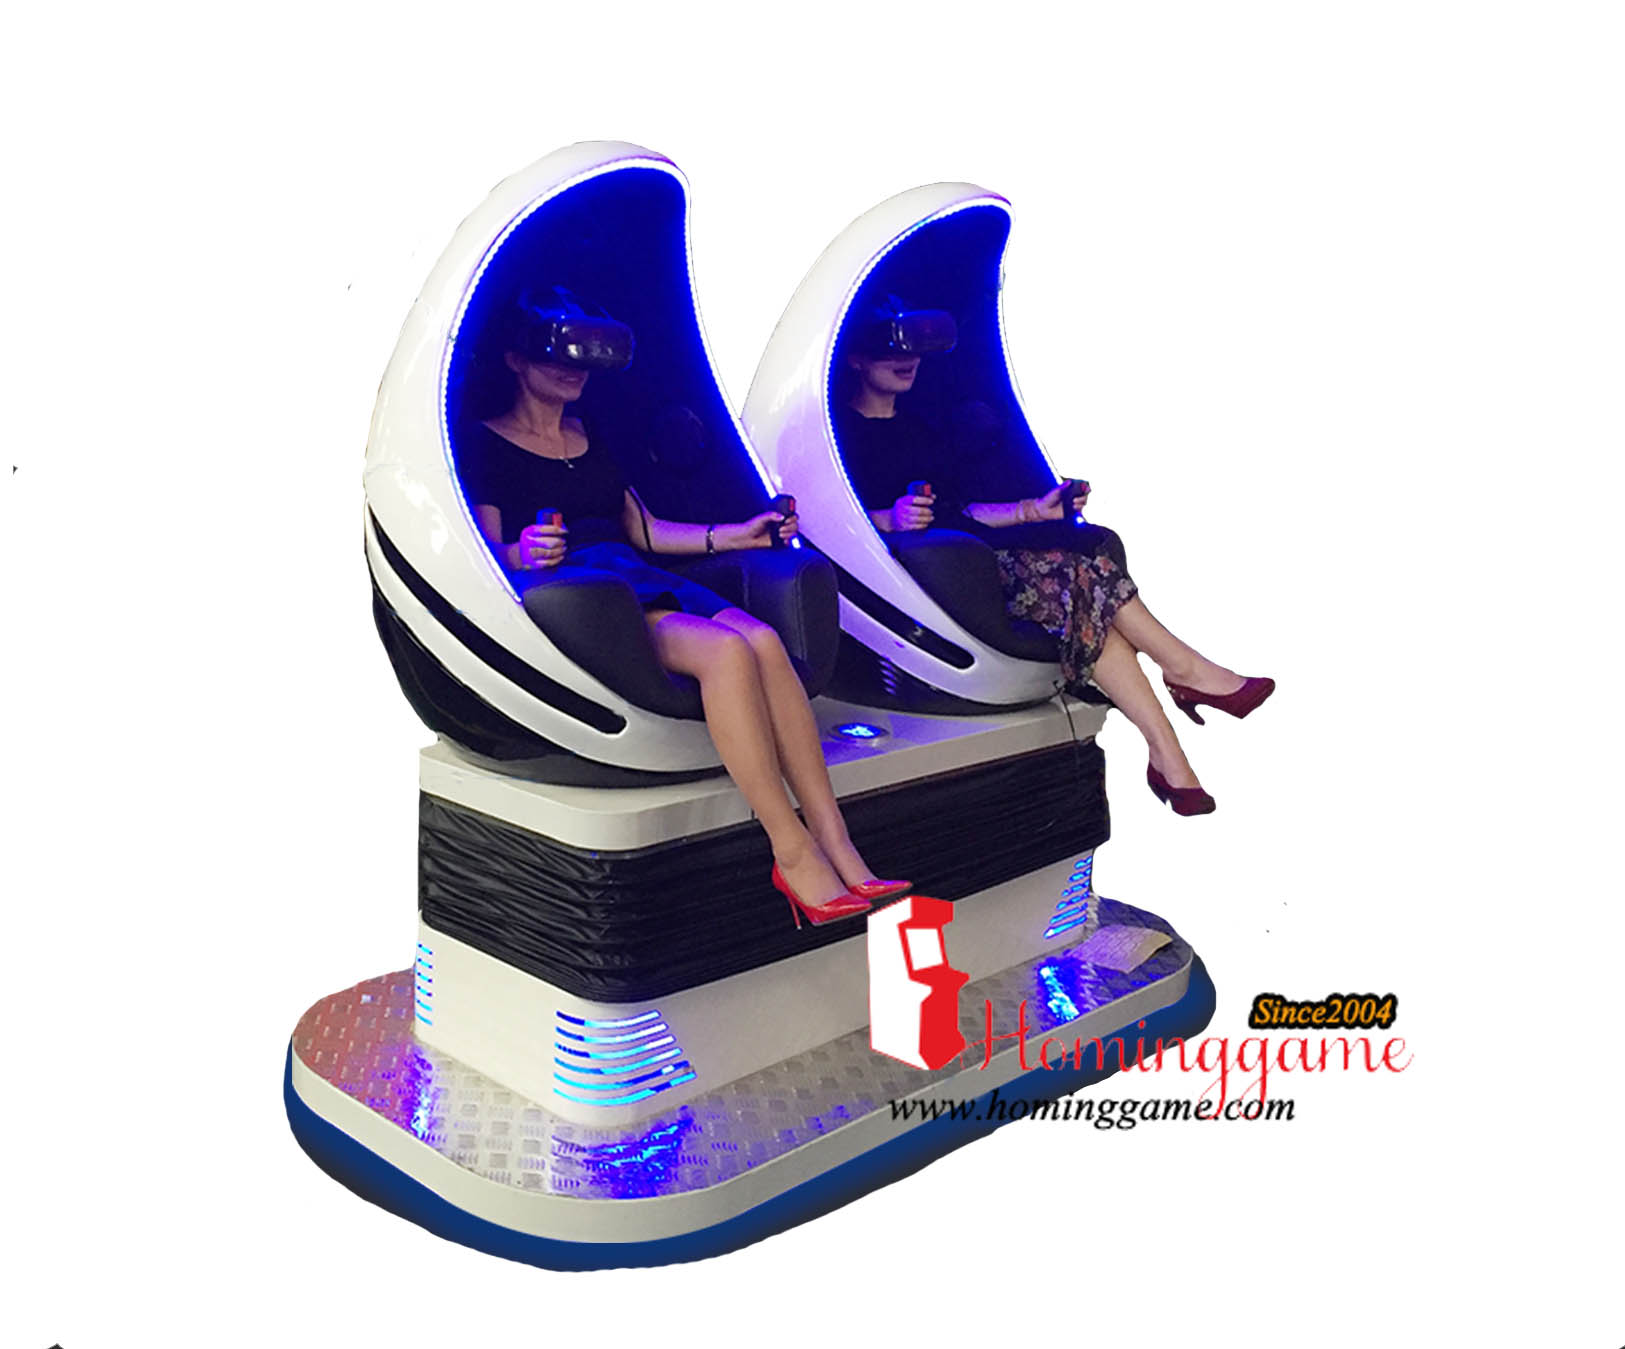 2 Seats 9D VR Egg Reality Game Machine,9D VR Cinema Egg Game,9D VR game,VR Game,9D VR,VR game machine,9D VR cinema,9D VR theater,9D,9D Machine,VR Egg,Single VR egg,Double 9D VR egg, 3 Player 9D VR egg,9D VR Bike,9D VR 6 seats Theater,6 seats VR theater,9D Cinema,9D racing Car Game Machine,9D VR gun shooting game machine,9D VR airplane,9D VR simulator game machine,Game Machine,Arcade Game Machine,Coin Operated Game Machine,Amusement park game machine,Simulator game machine,Indoor game machine,Family Entertainment,Entertainment game machine